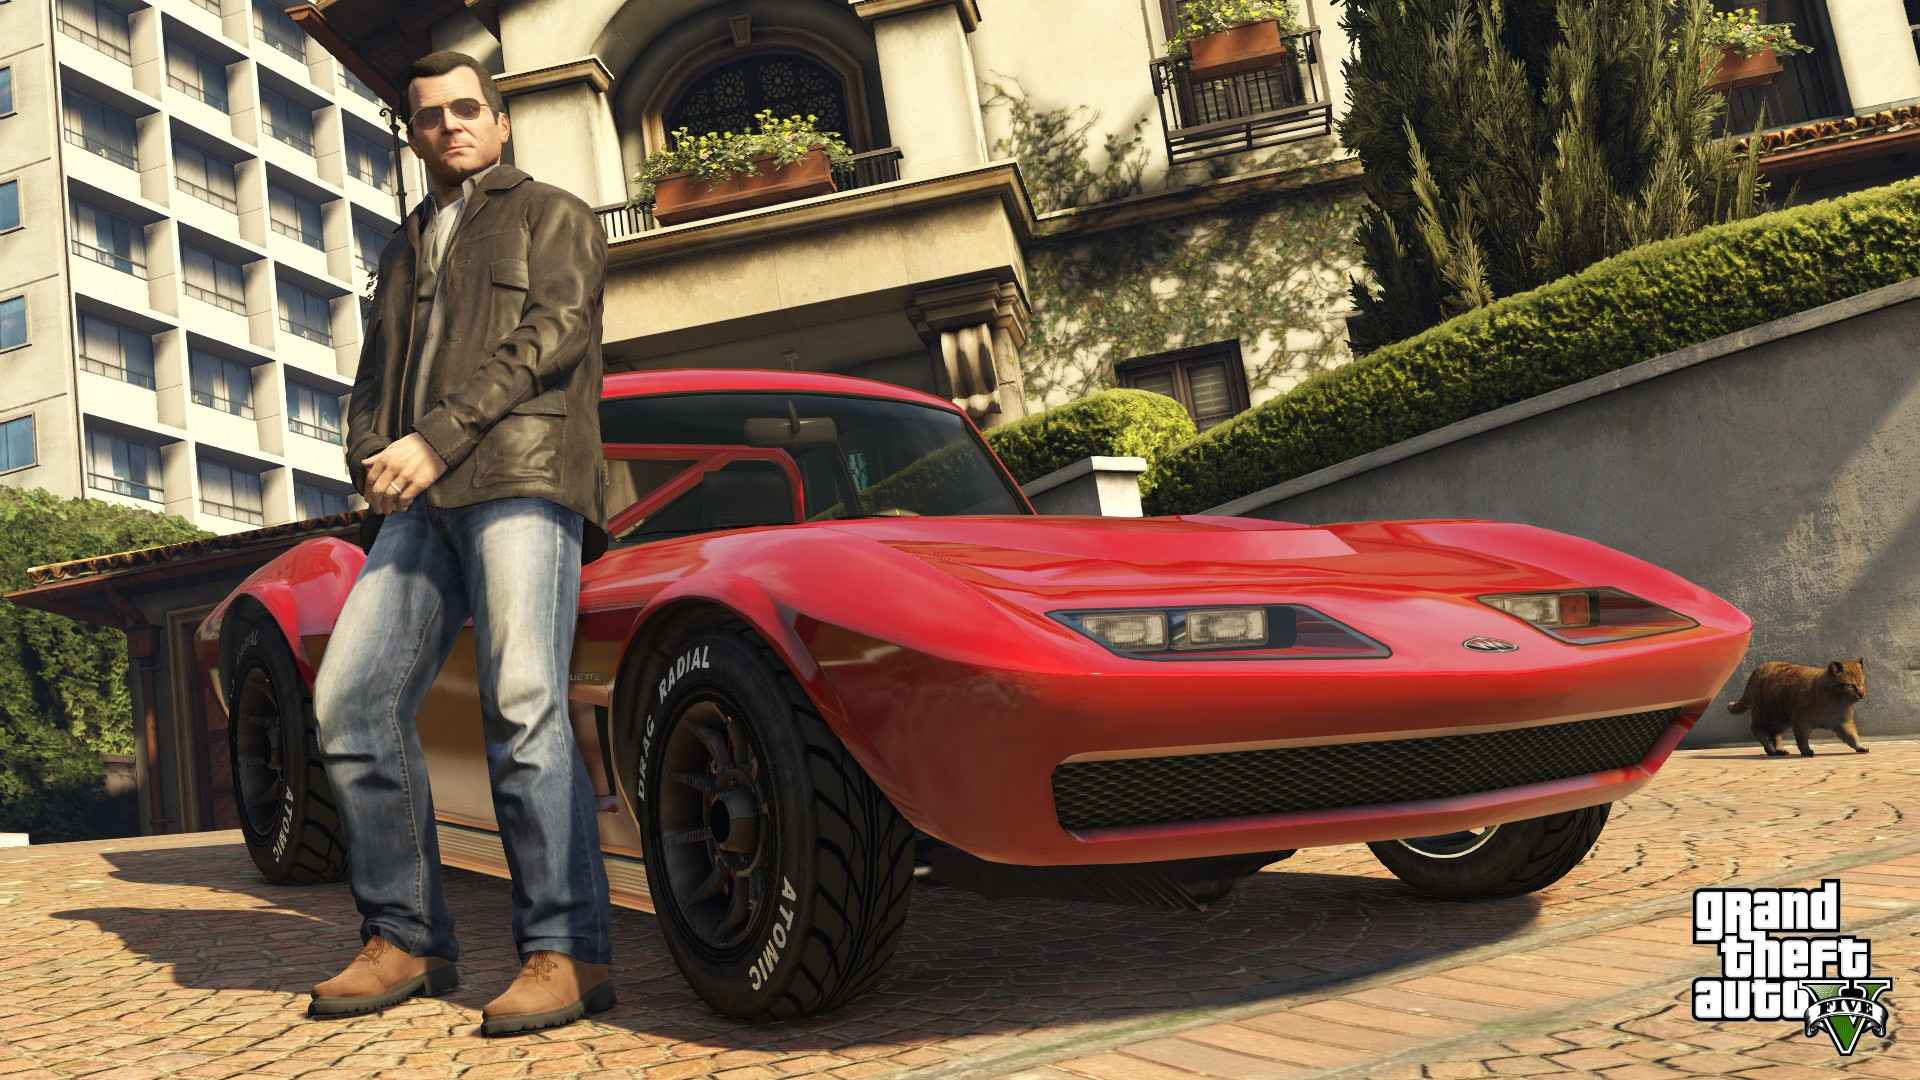 Game Grand Theft Auto V Wallpaper 051